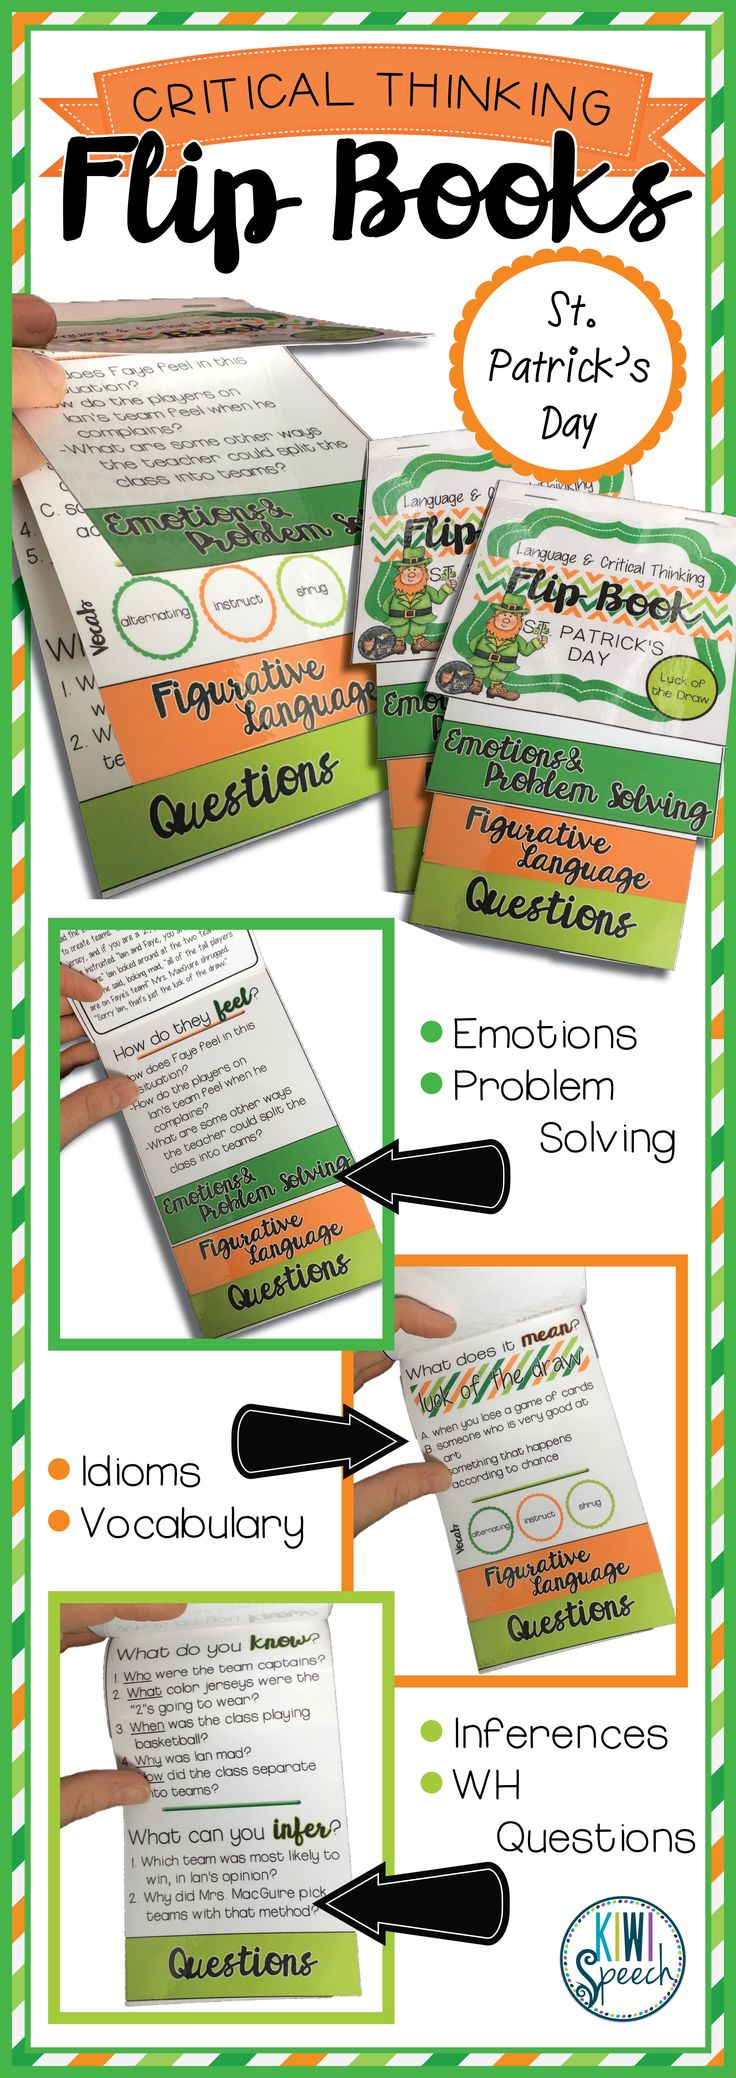 Critical Thinking & Higher-Level Language Flip Books {St. Patrick's Day} includes EIGHT higher-level language and critical thinking flip books. Each of the 8 books in this set contains an original short story around which the following language activities are centered: Emotions & Problem Solving, Figurative Language & Vocabulary, Questions, and Idioms. $ gr 3-9